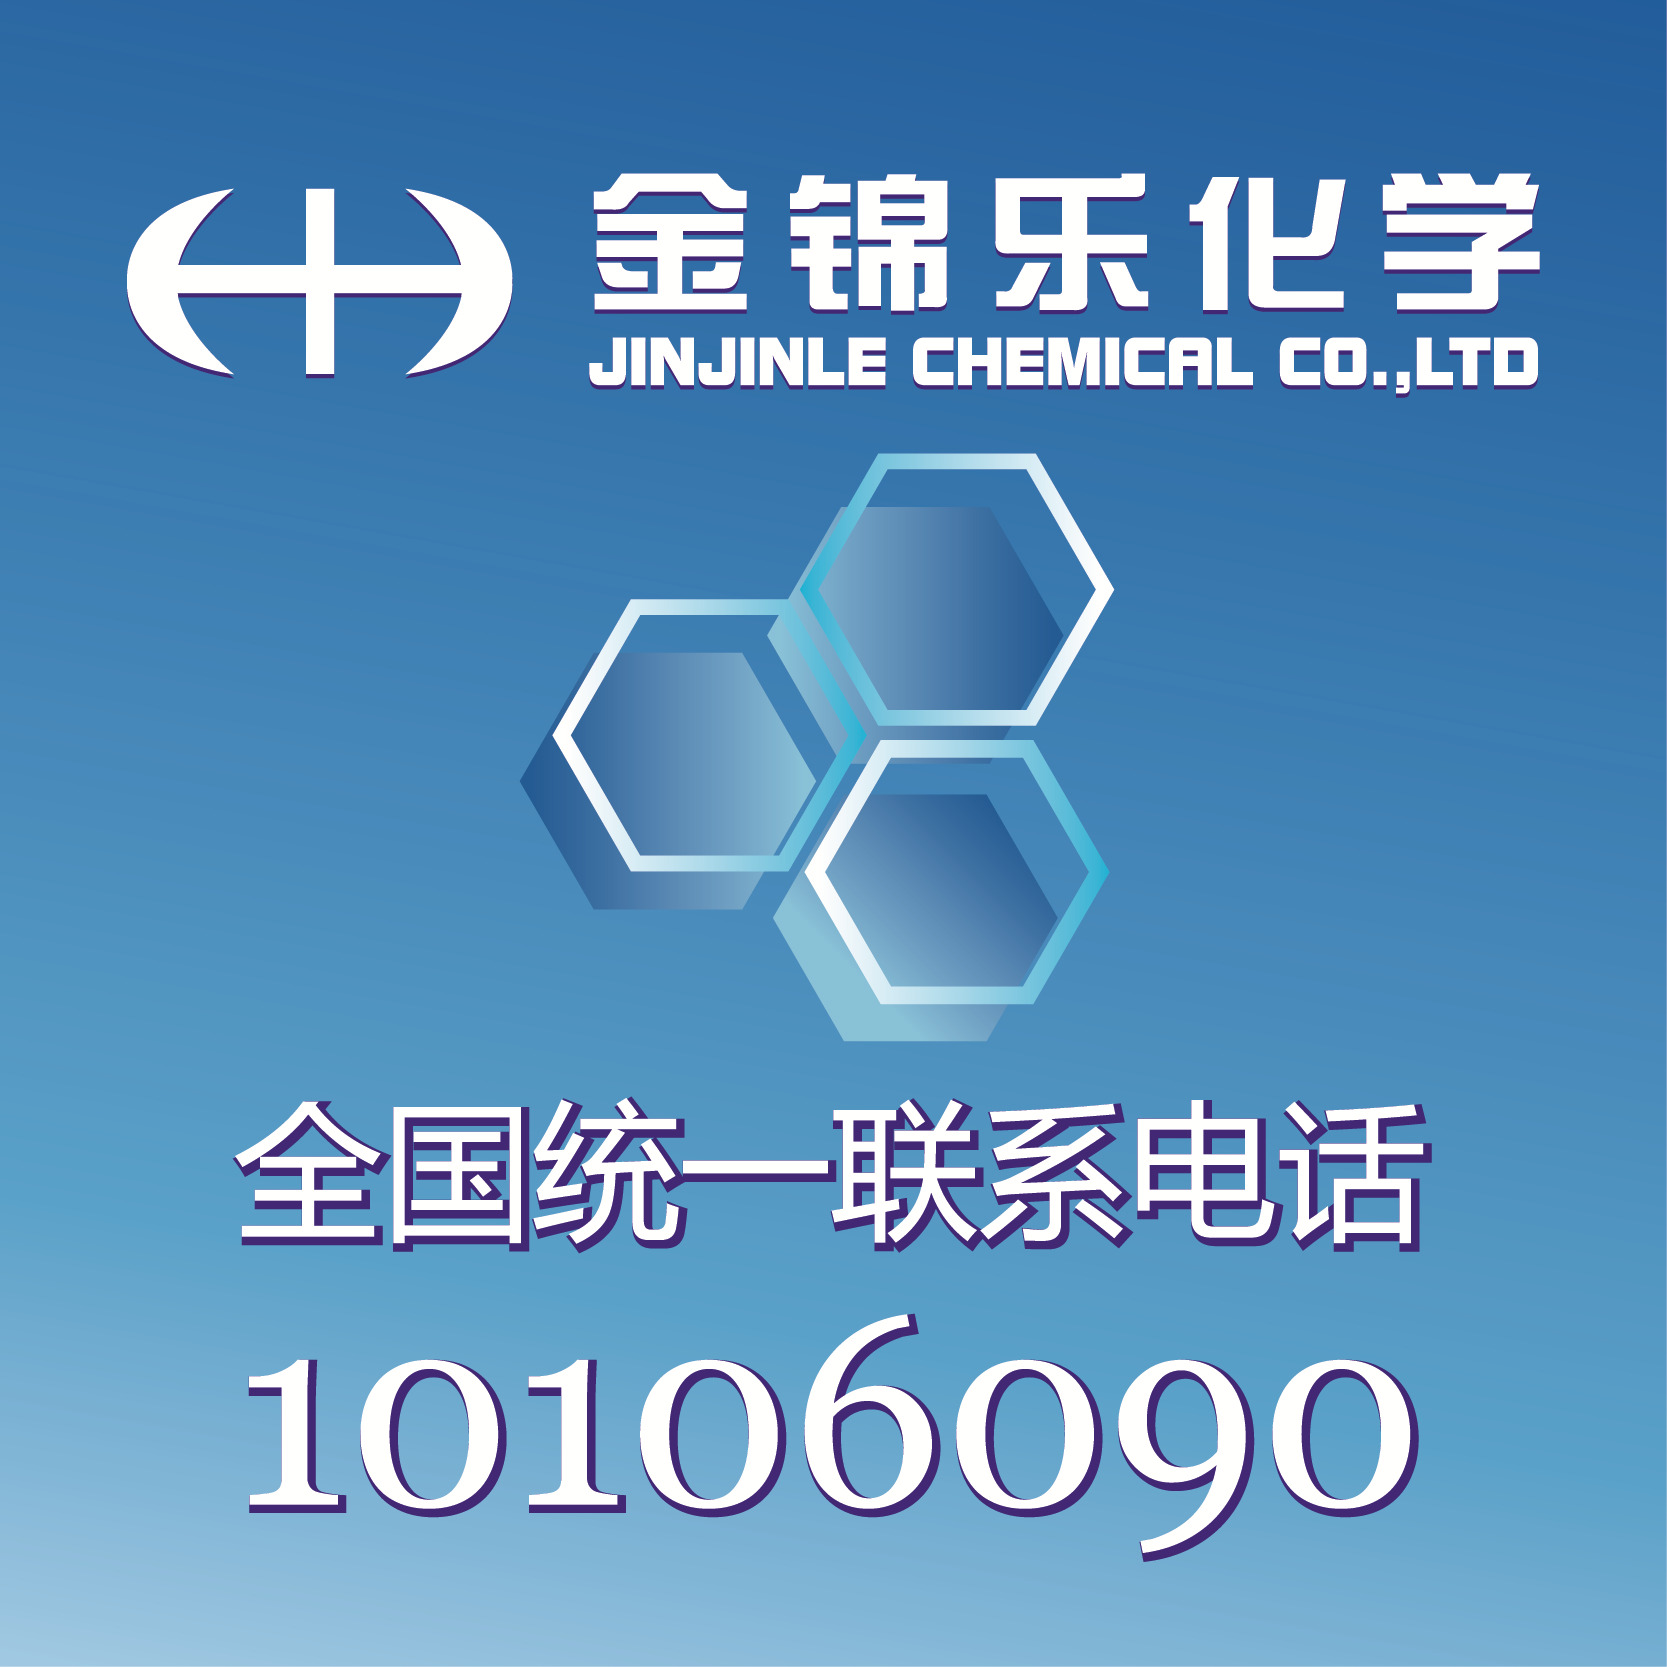 JINJINLE CHEMICAL CO;LTD